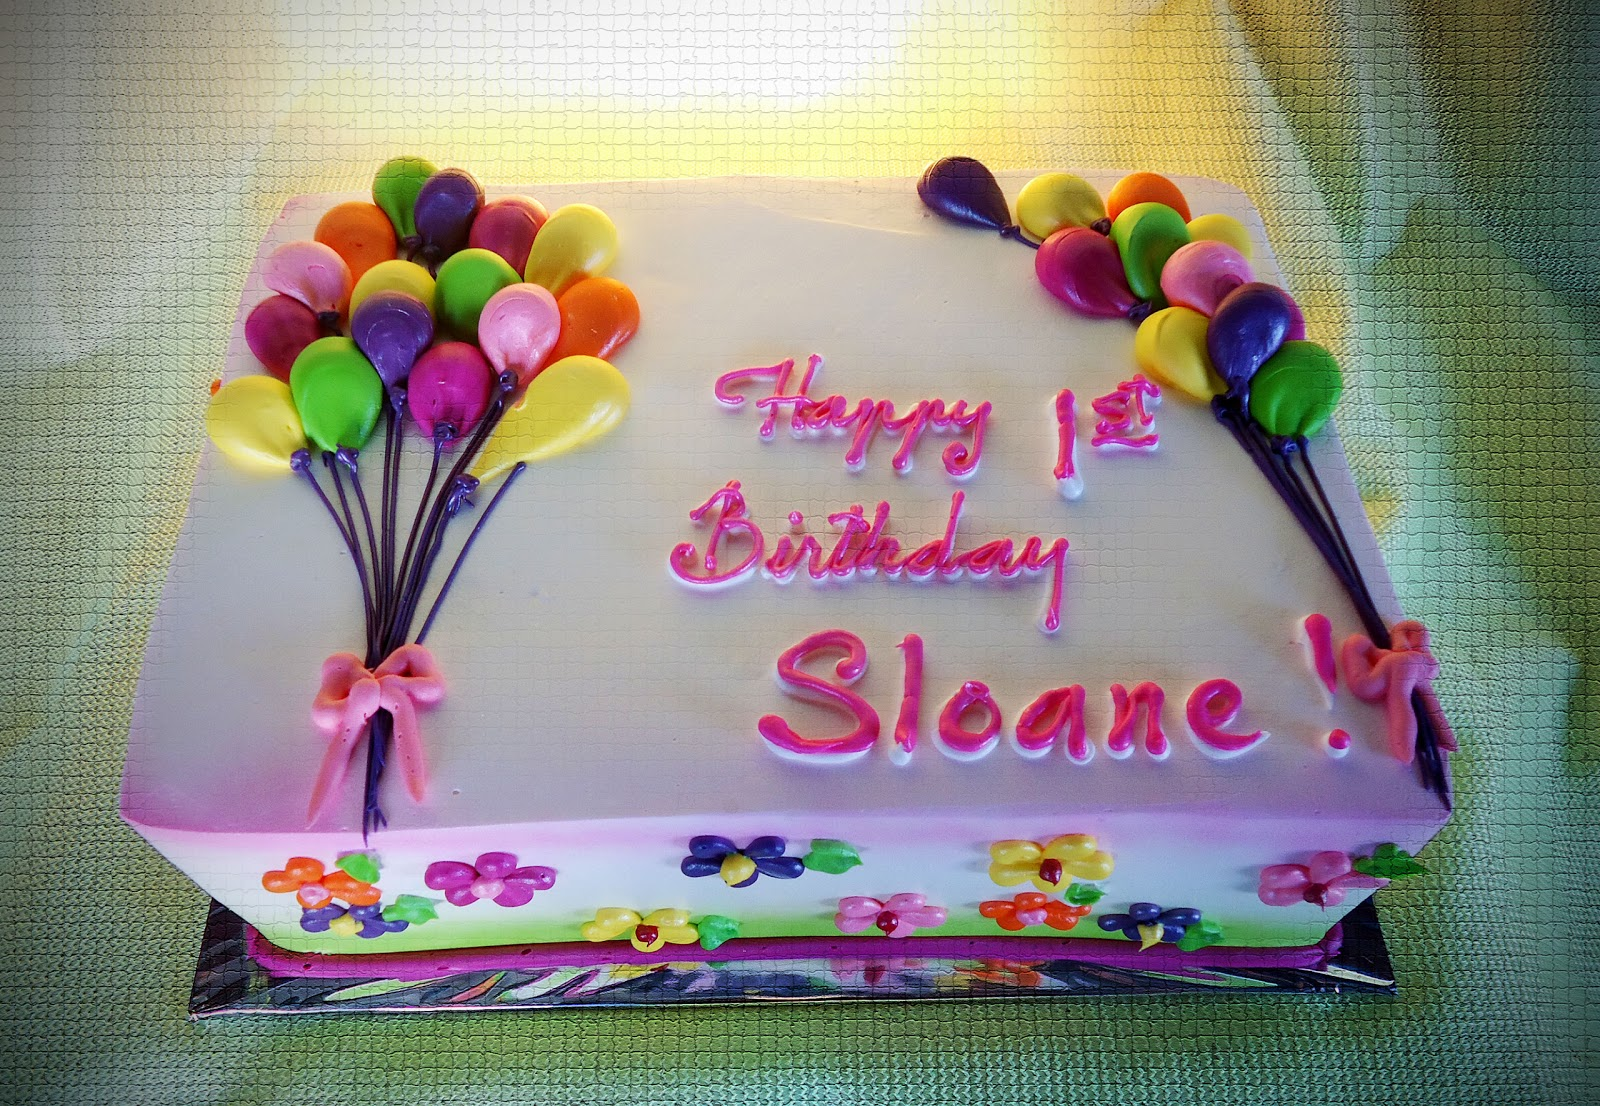 Bamboo Bakery 602 246 8061 How To Order A Birthday Cake